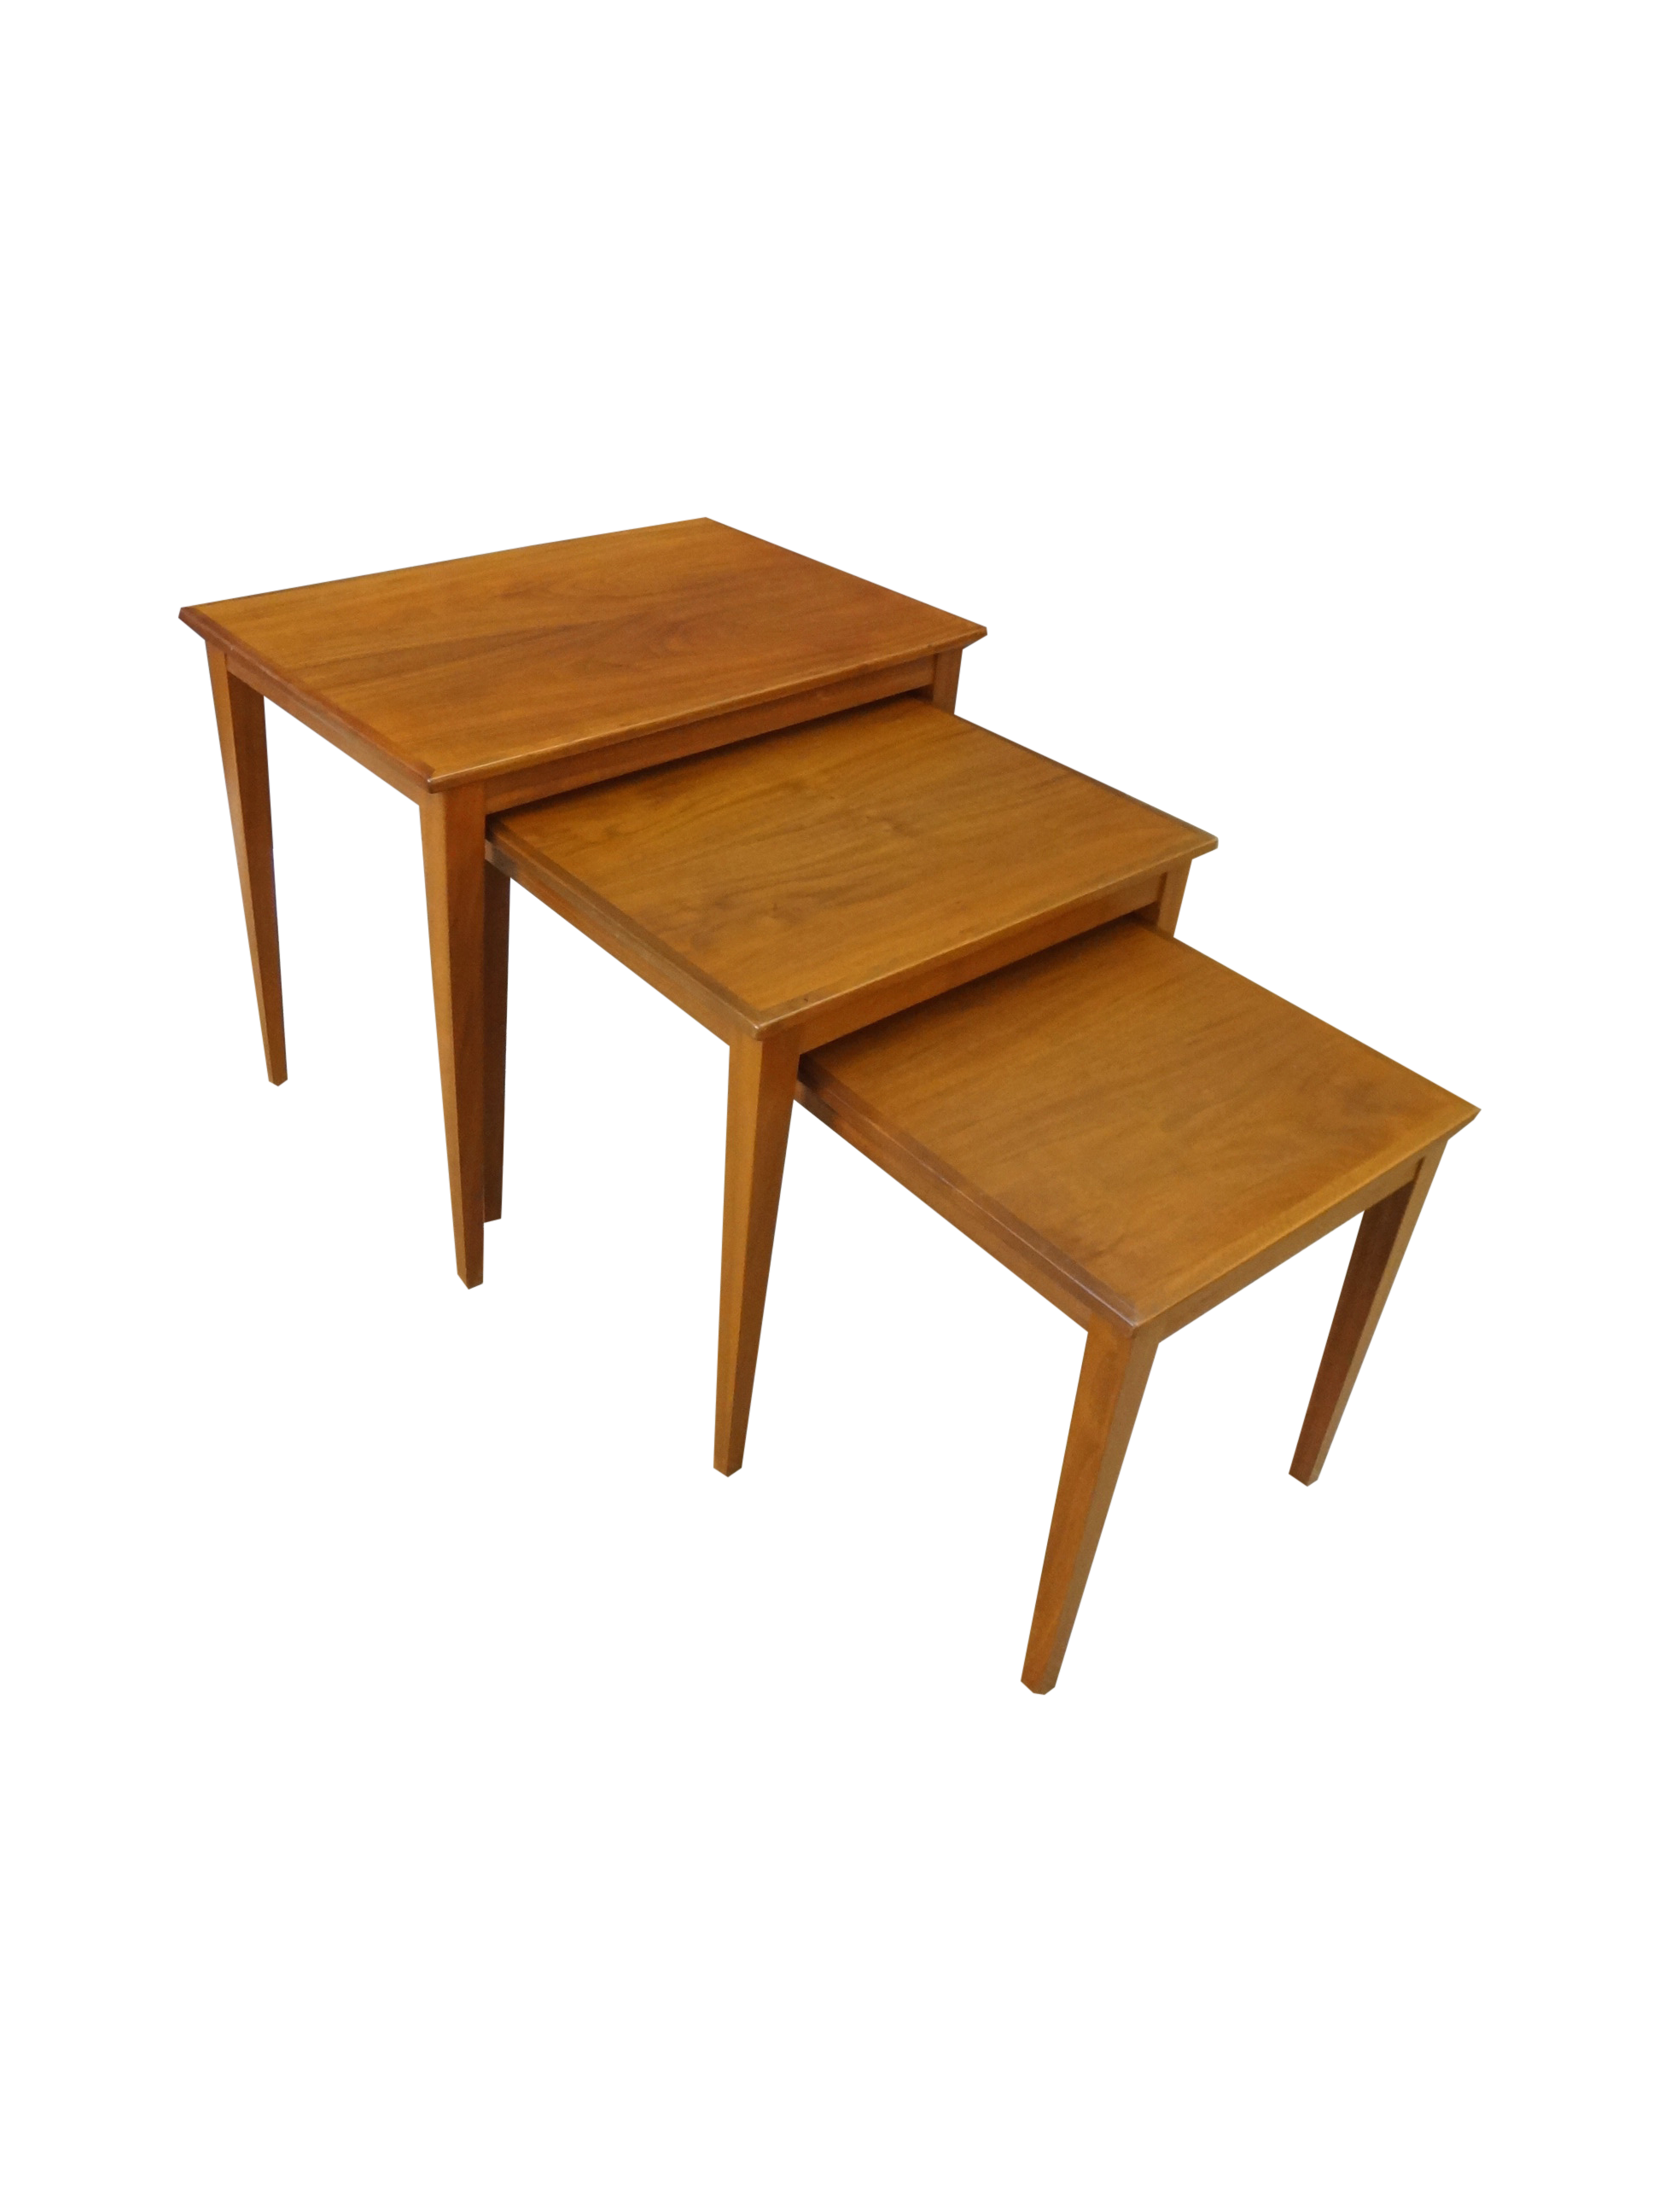 Danish Modern Teak Nesting Tables Chairish. Full resolution  image, nominally Width 1944 Height 2592 pixels, image with #441E08.